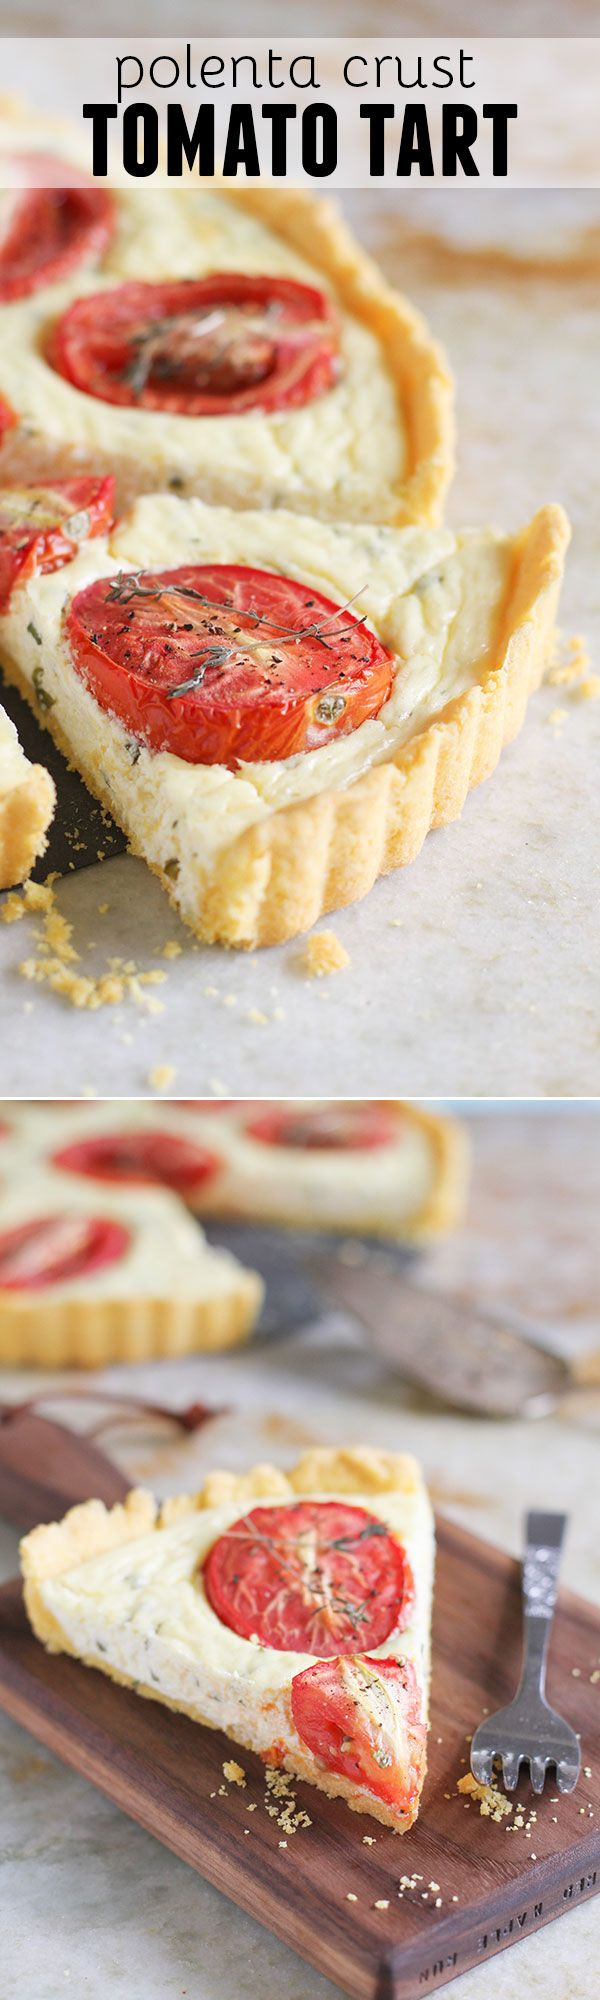 Polenta Crust Tomato Tart | Recipe | Salts, All things and Gluten free